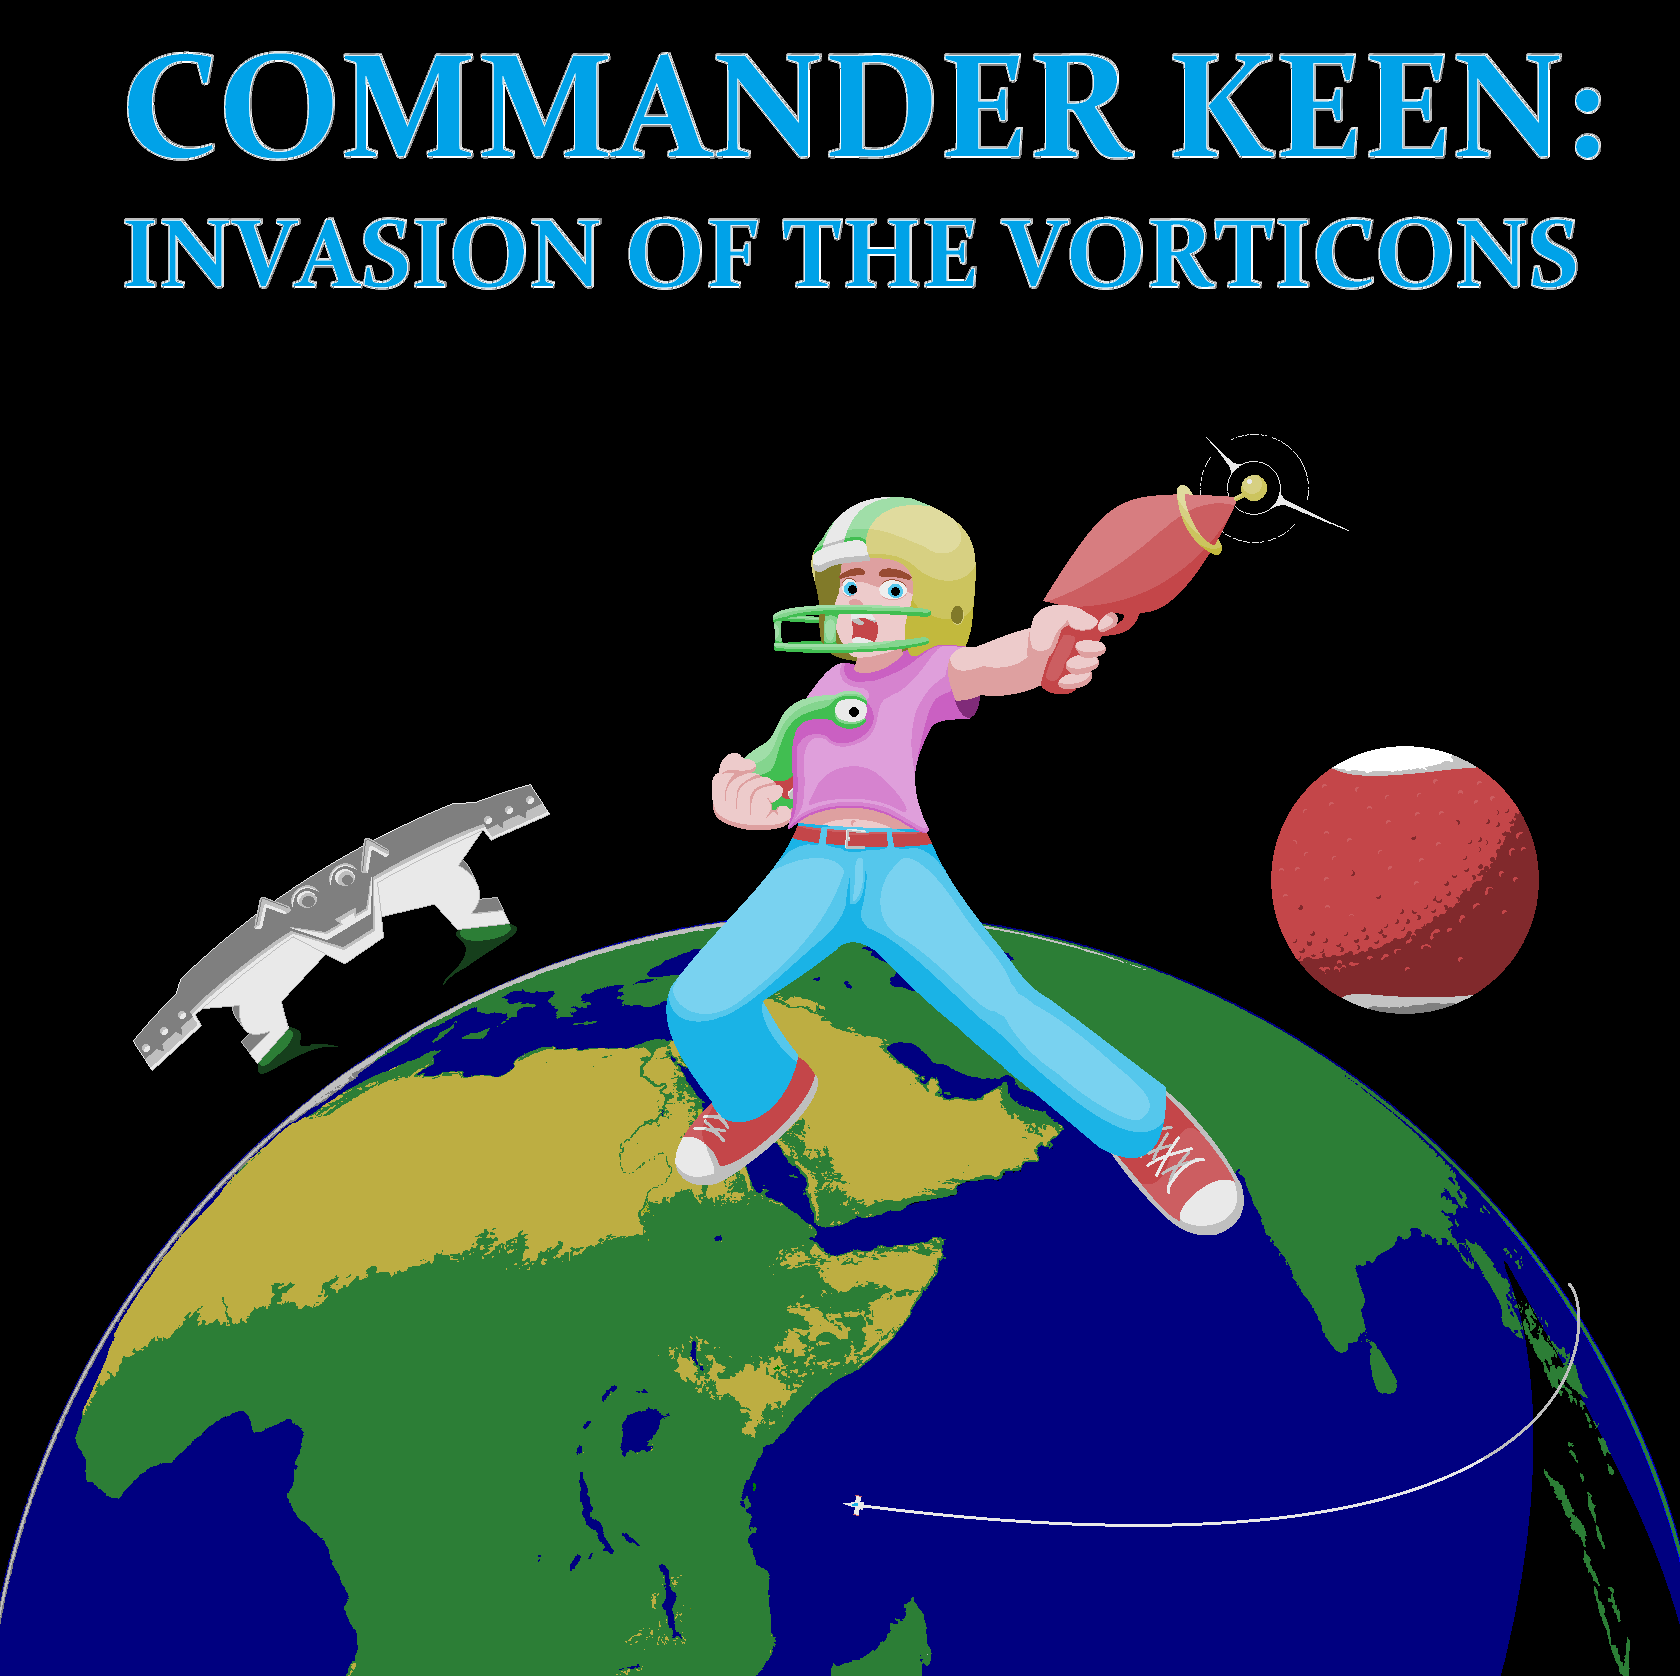 Invasion of the Vorticons